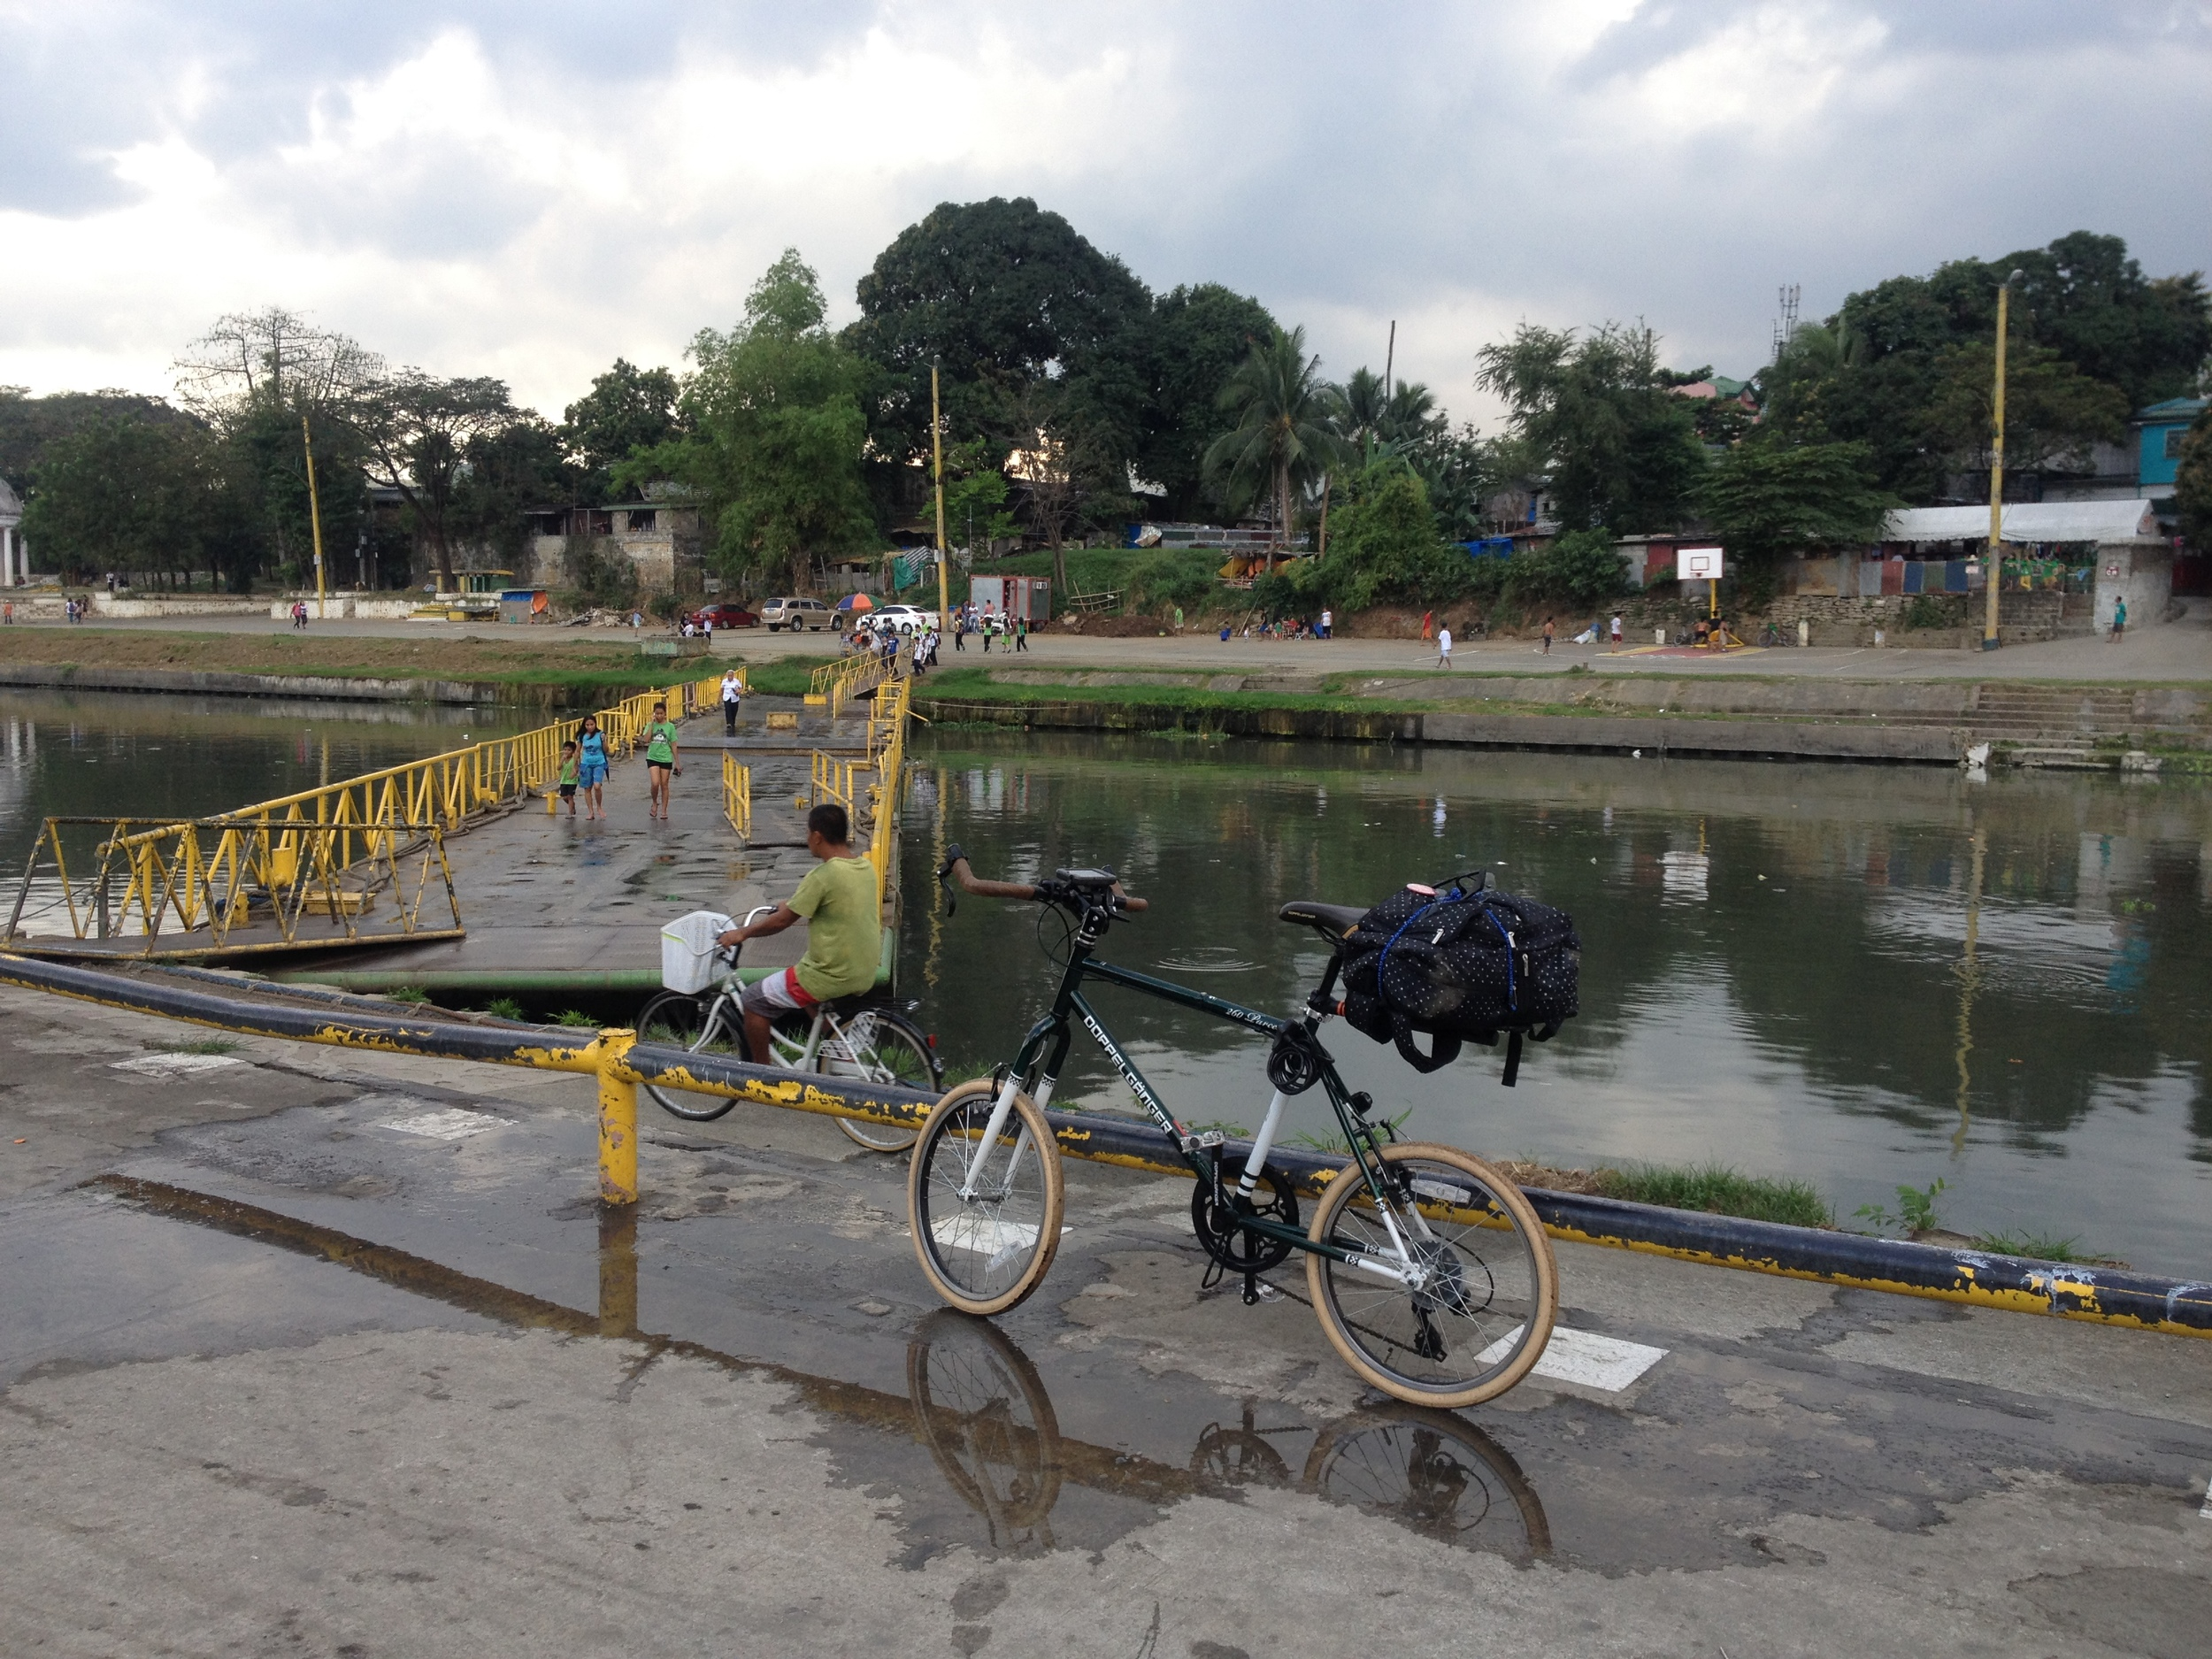 This floating bridge can technically be moved to any location. This is the only one along the river, but it should be replicated at other points along the river since there are few places to cross to the other side. These are a low-cost solution which can be easily implemented around Metro Manila on other rivers; after visiting the disconnected areas of Navotas and Malabon there are clearly numerous potential opportunities to use these elsewhere.